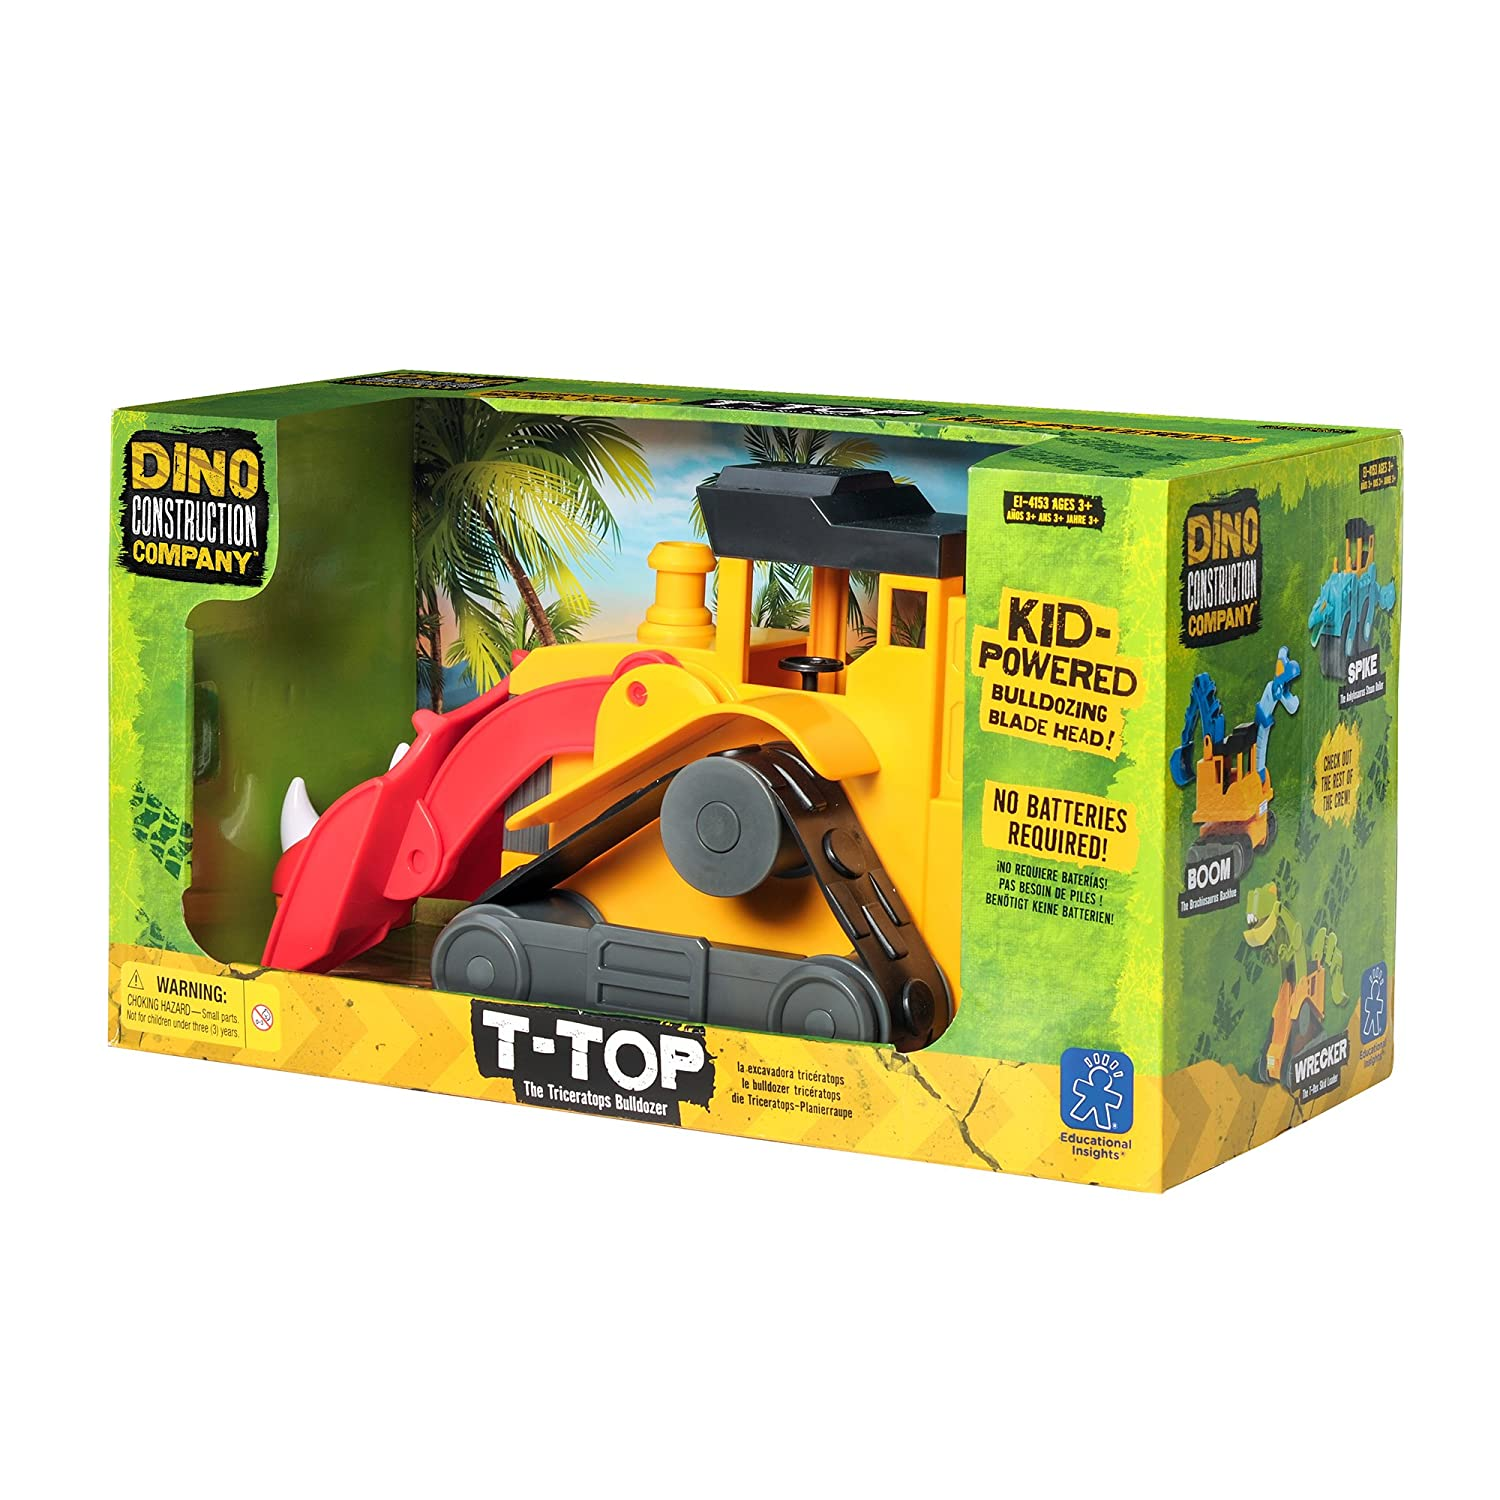 Amazon.com: Educational Insights Dino Construction Company—T-Top the Triceratops Bulldozer: Toys & Games